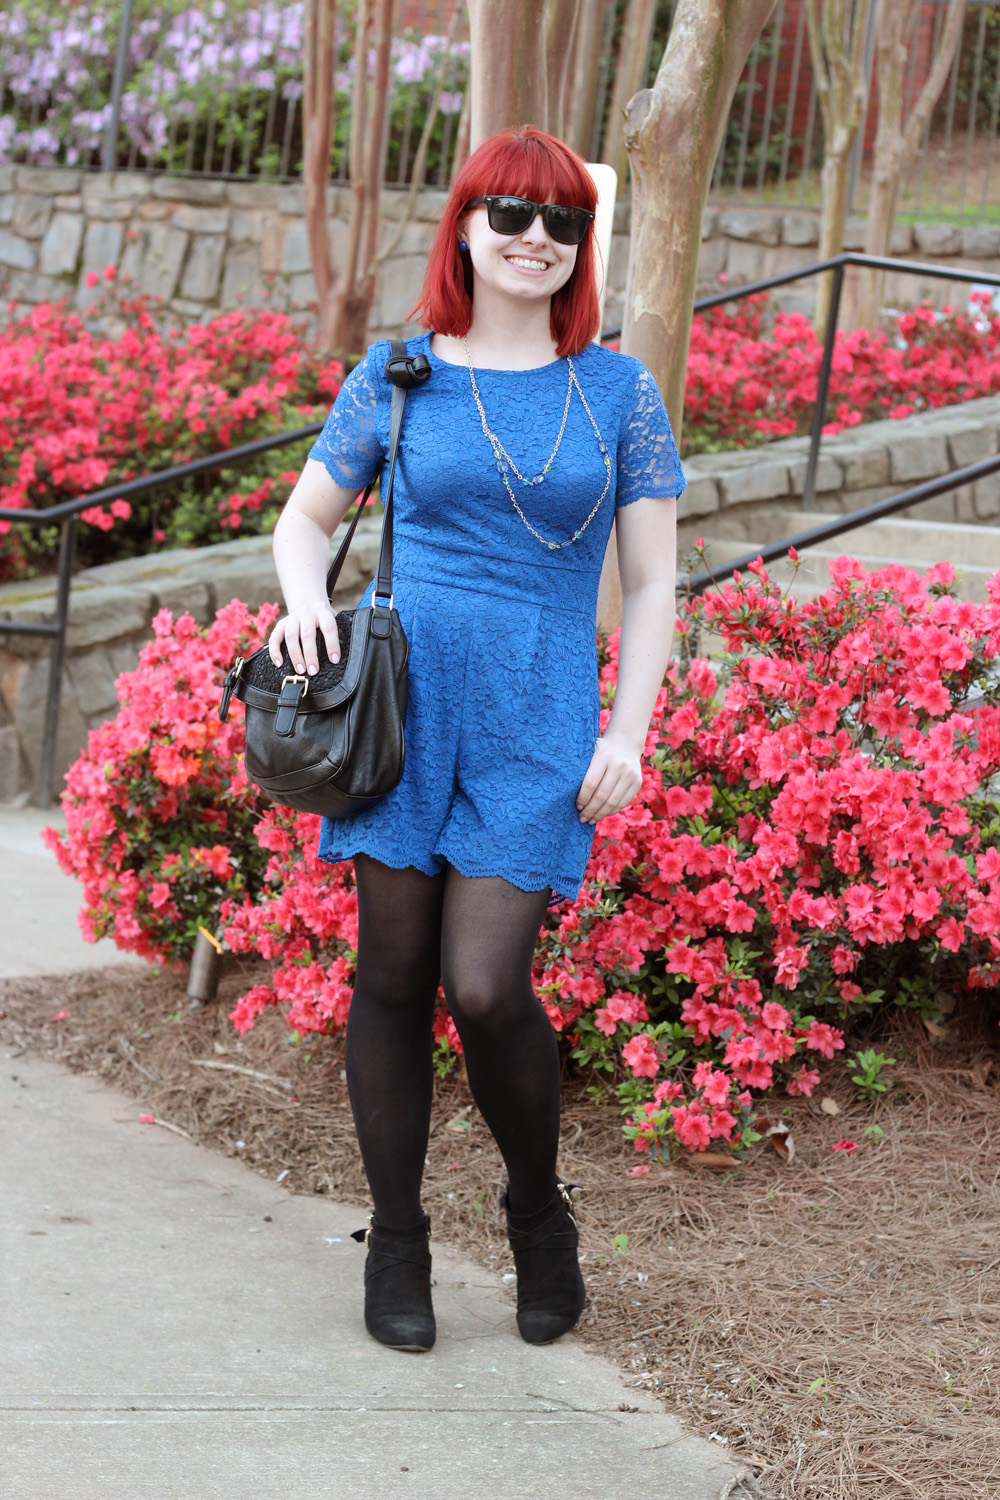 Cobalt Blue Lace Playsuit with a Beaded Necklace and Black Wedge Boots from Target